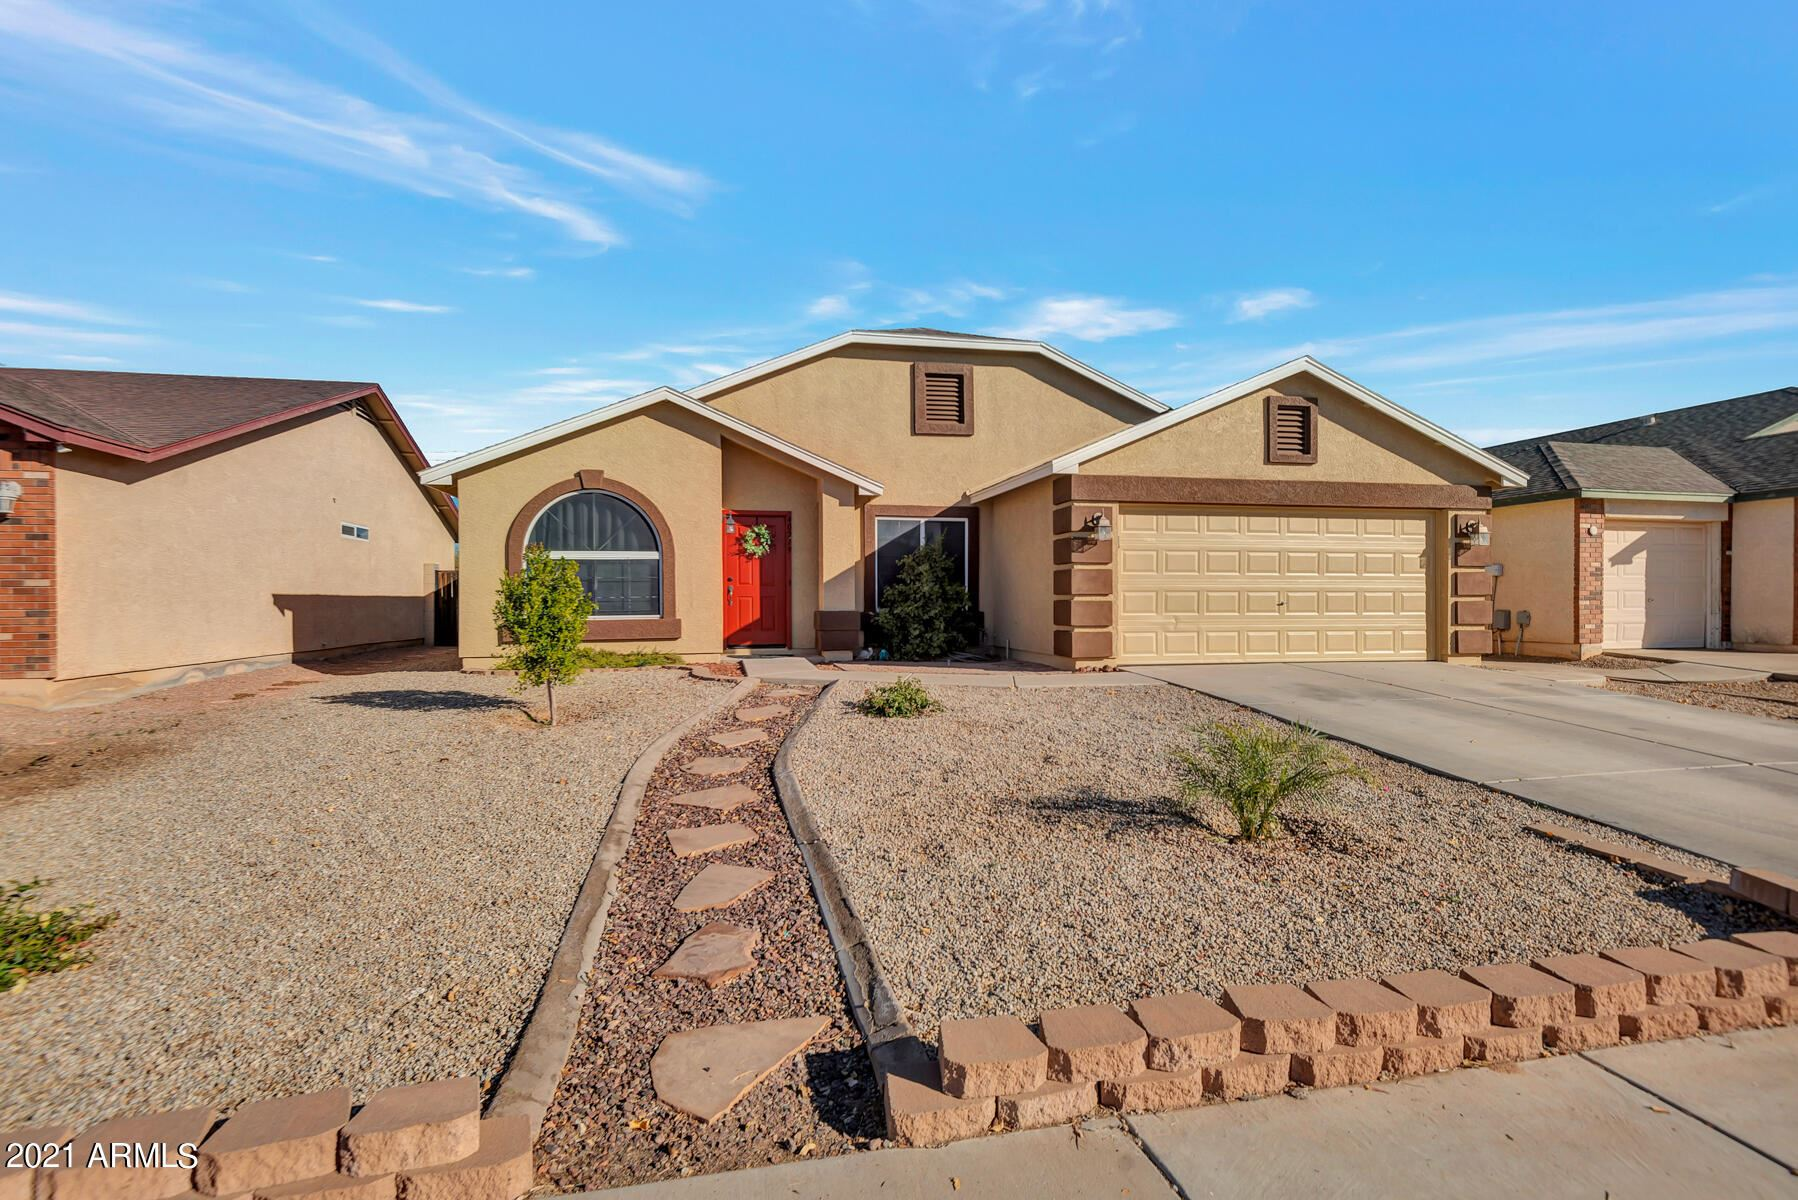 Photo of 40219 N JODI Drive, San Tan Valley, AZ 85140 (MLS # 6203284)